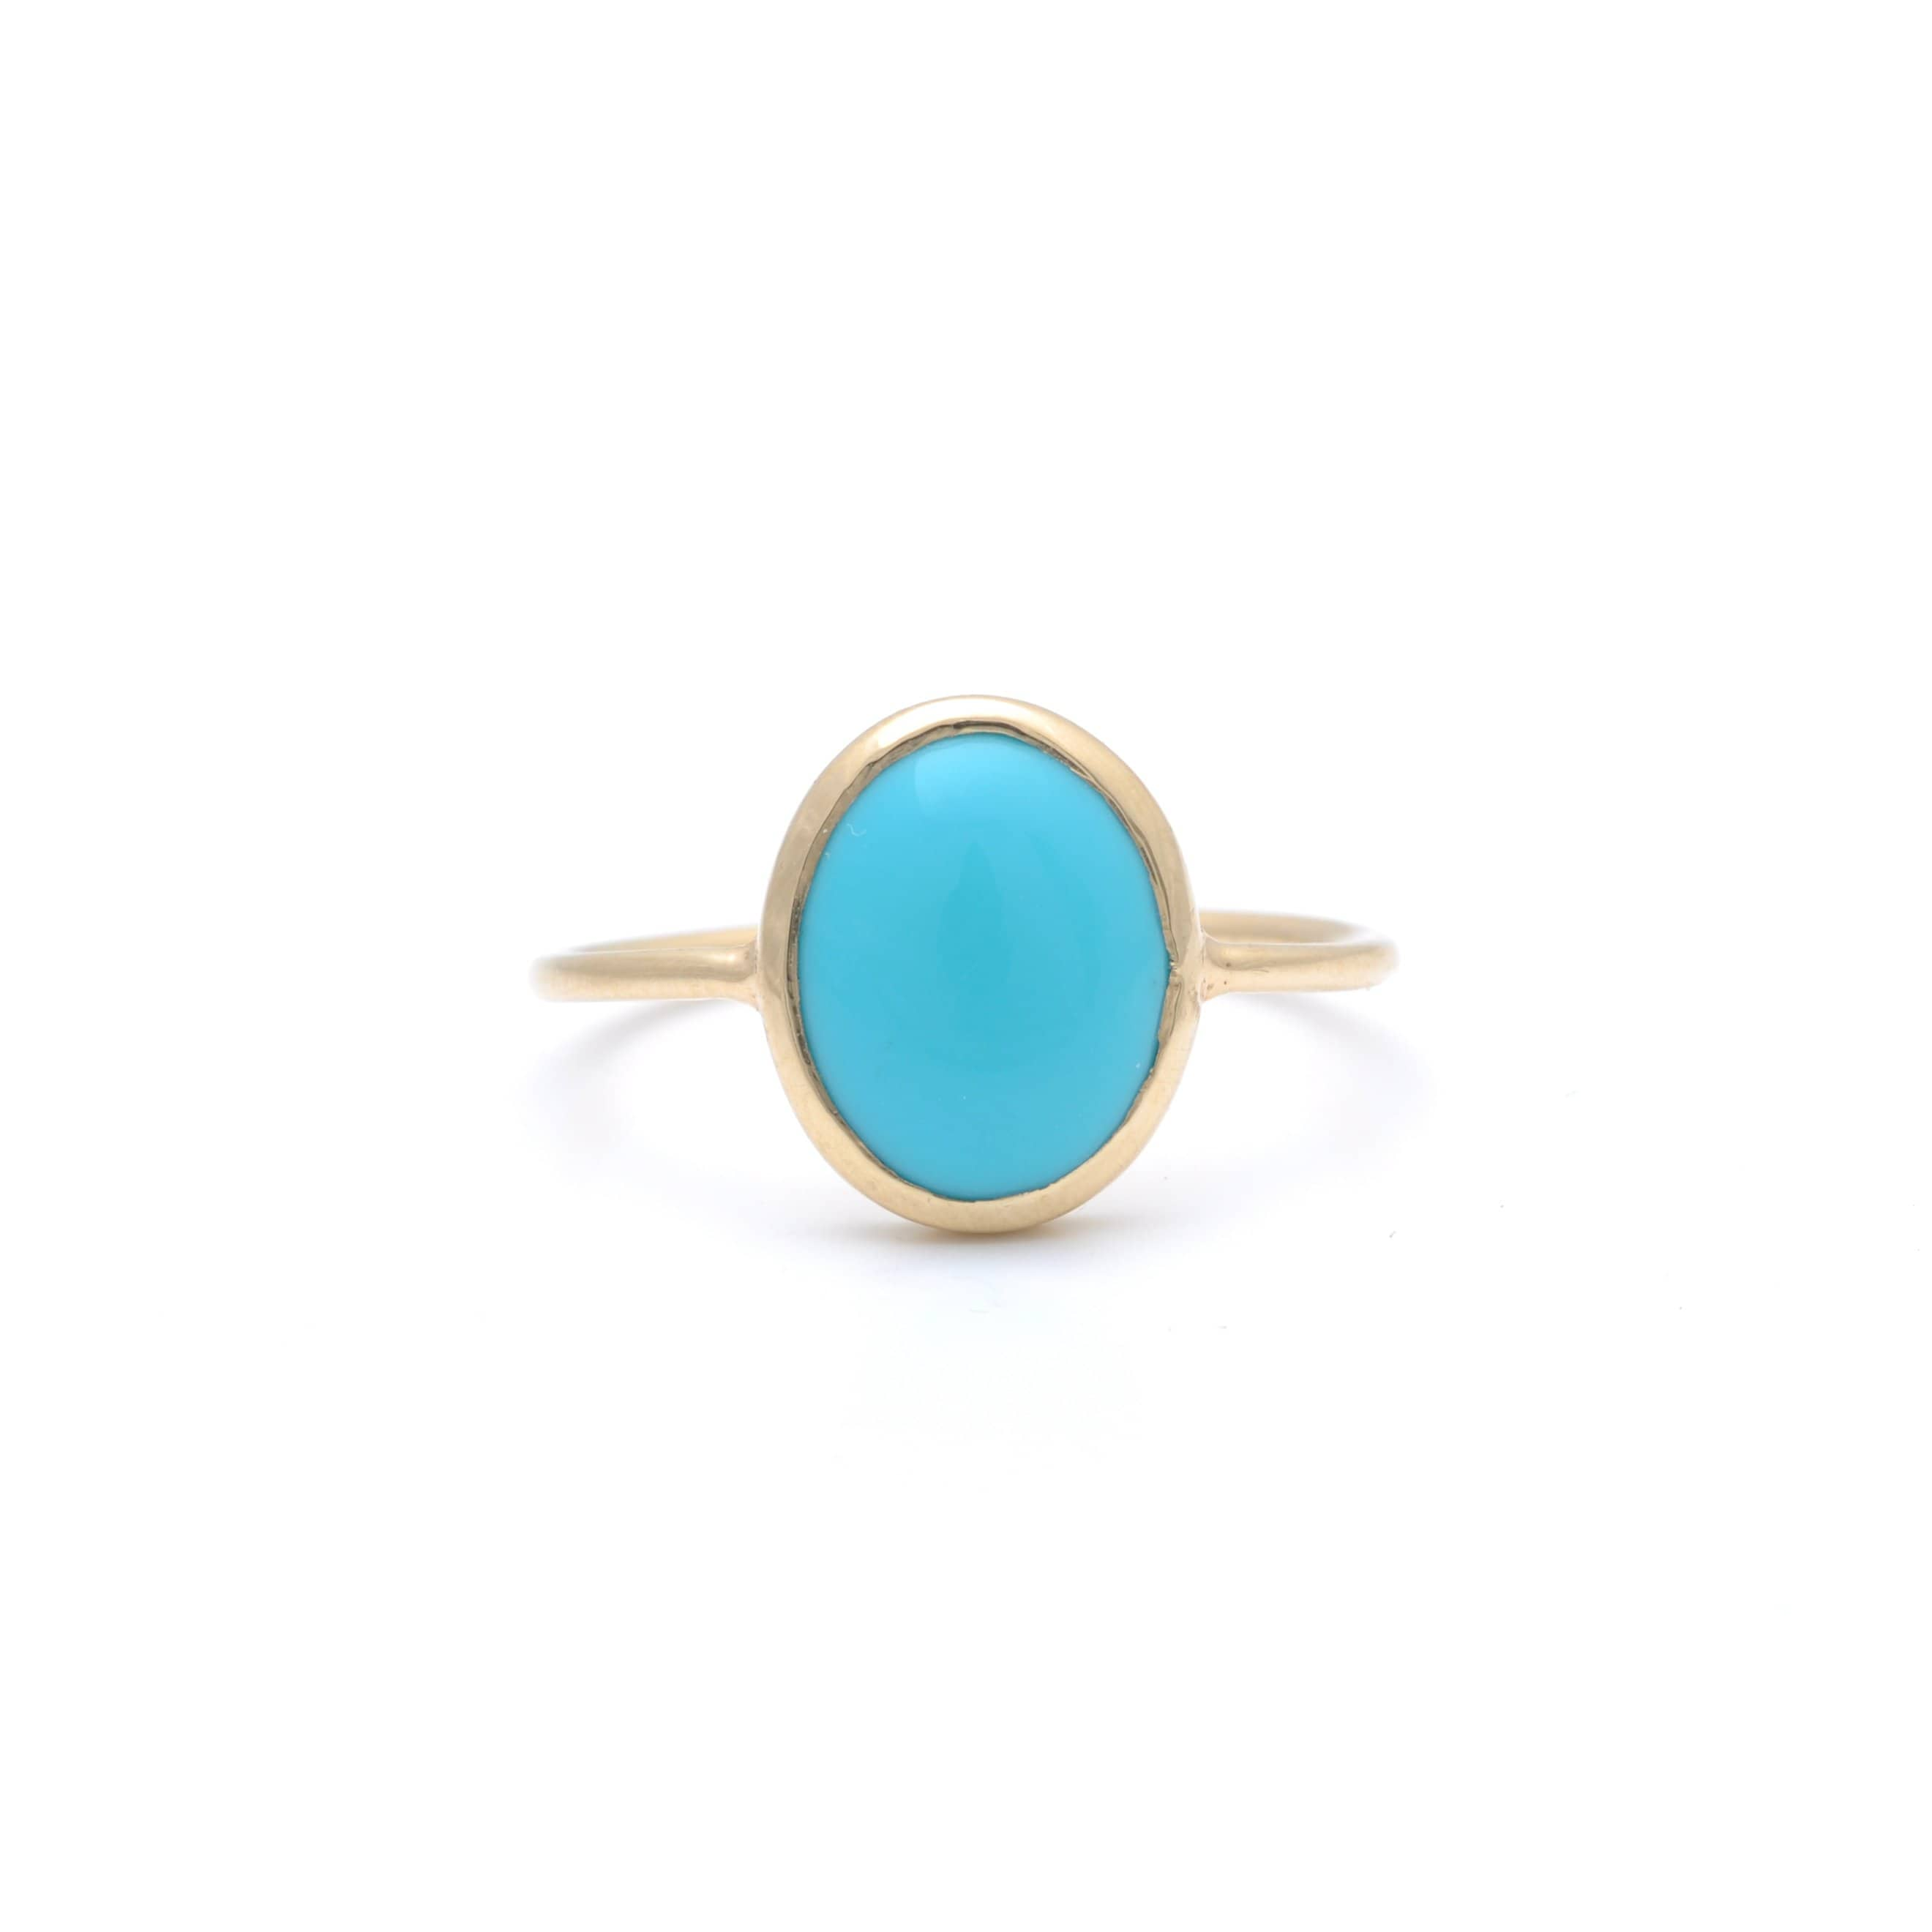 Large oval turquoise ring.